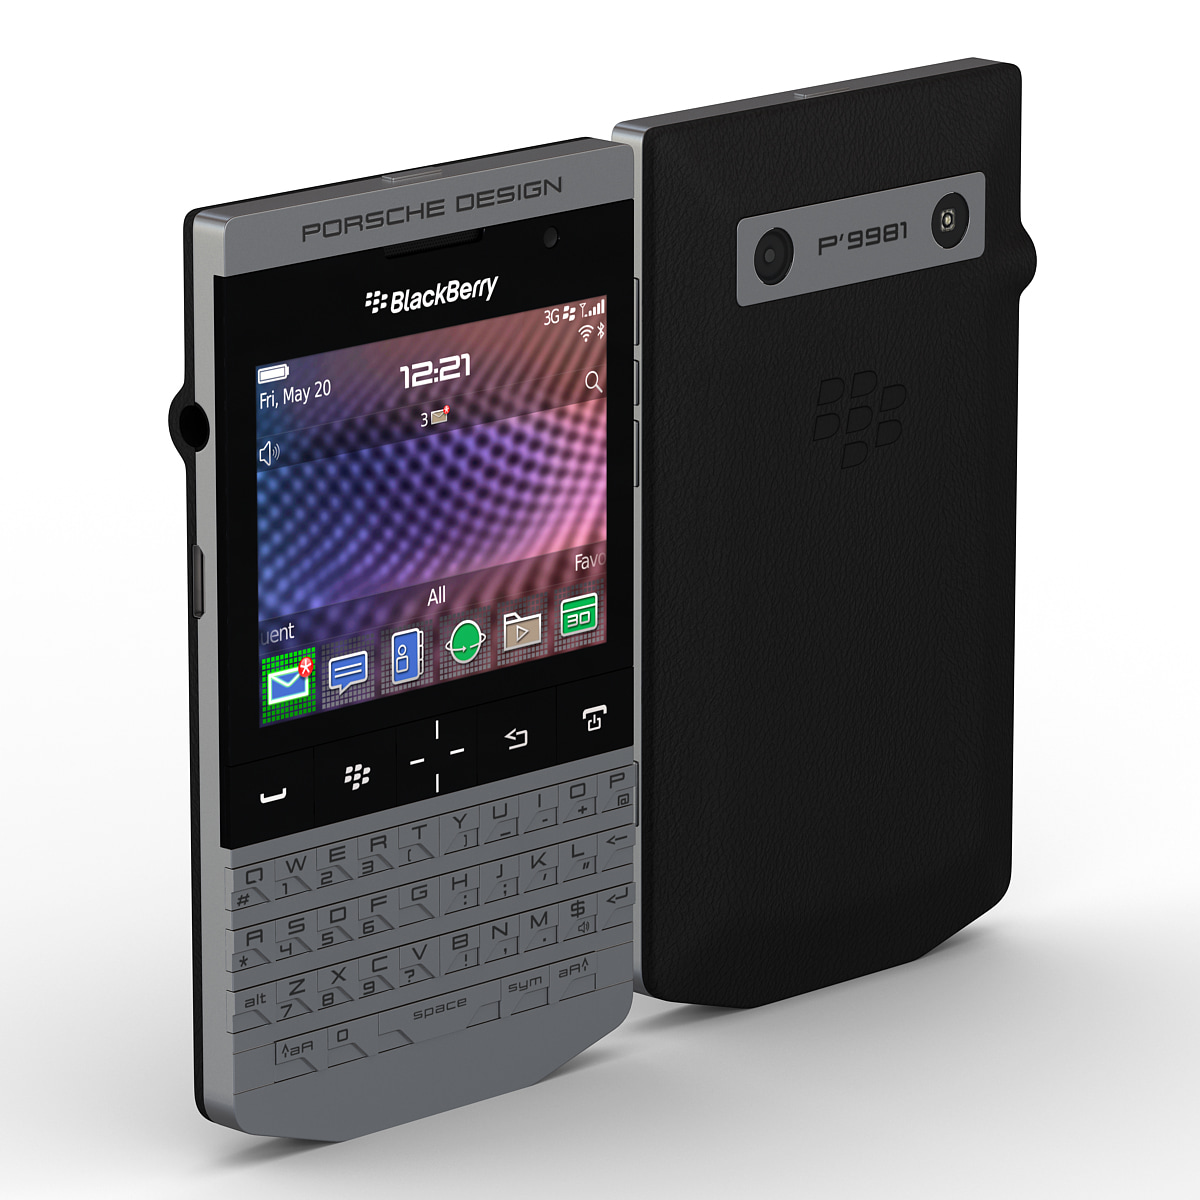 Blackberry_PDA_9981_001.jpg